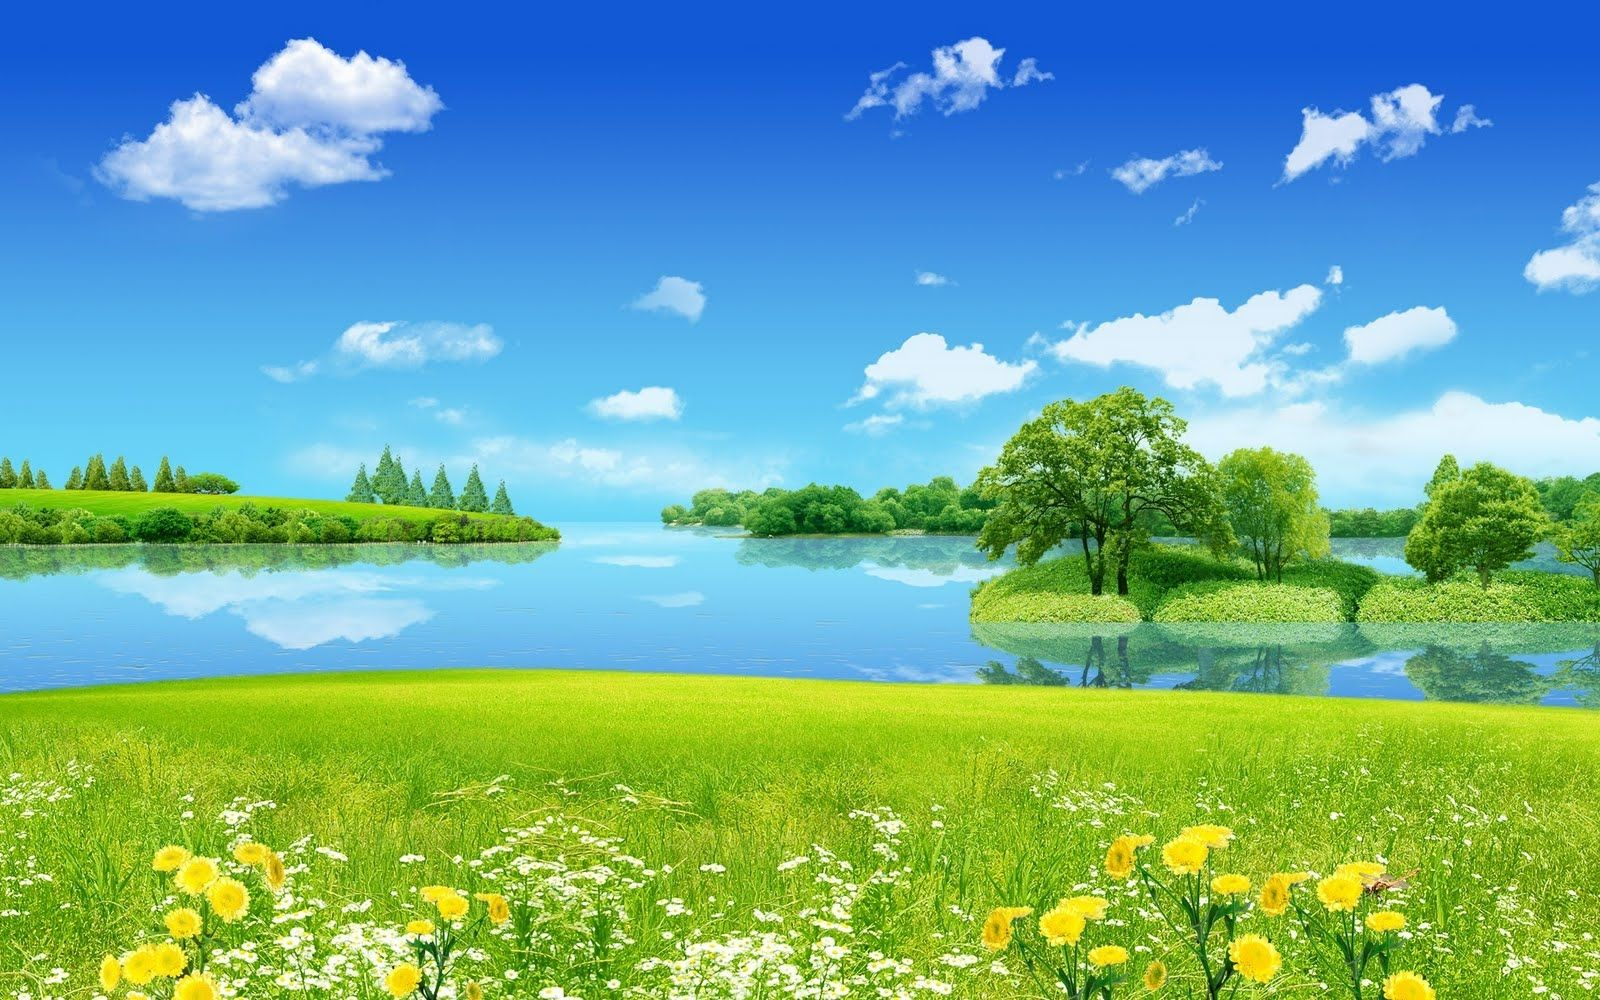 New Wallpaper Of Nature Video Wallpaper Of Nature Video Download